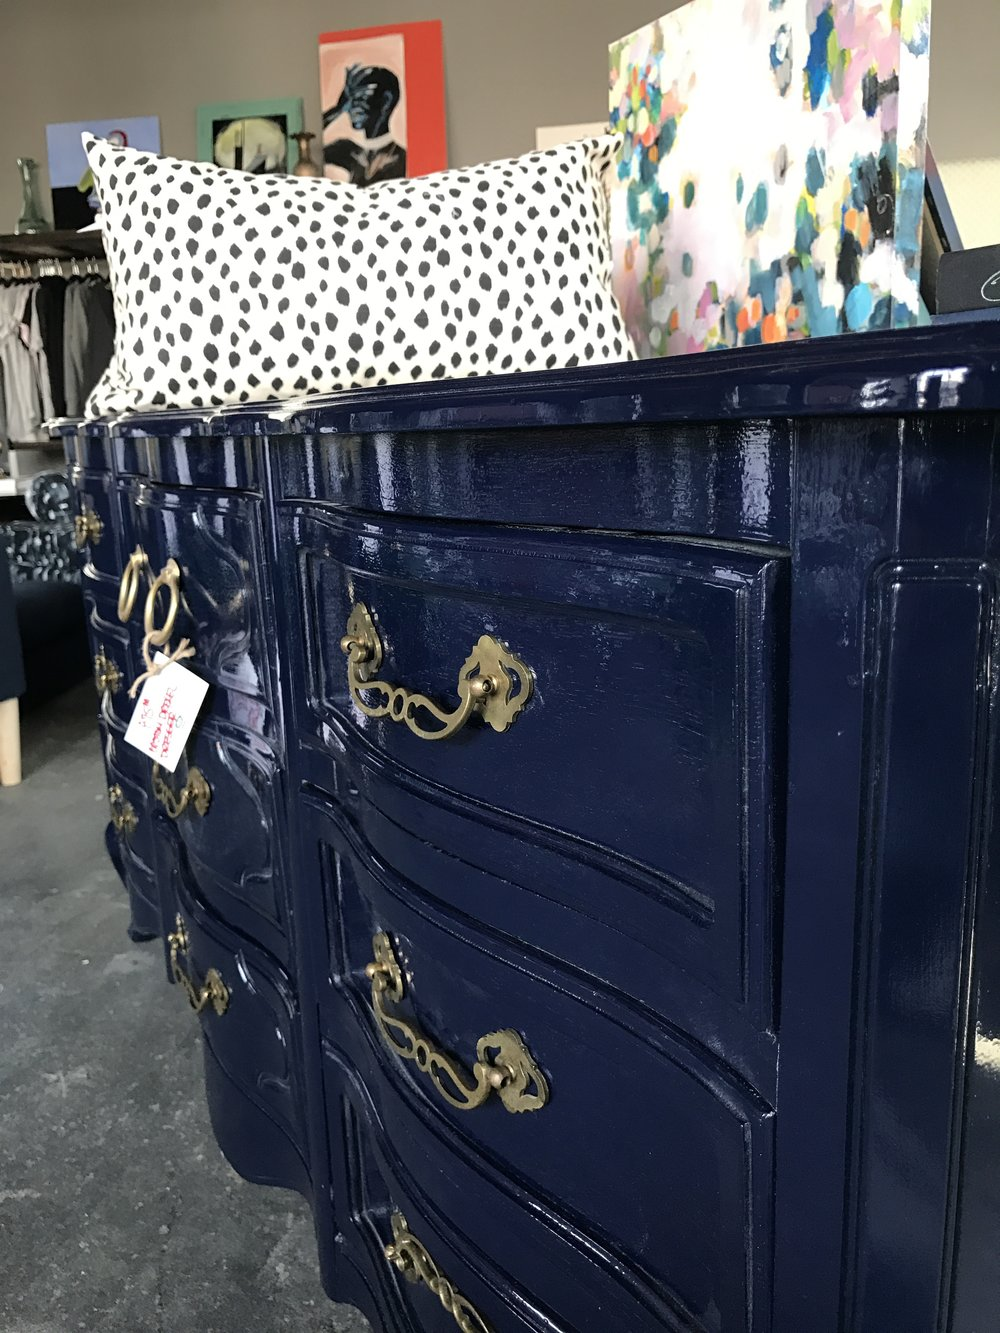 CUSTOM FURNITURE  Can't find what you are looking for? We can custom build the perfect piece to complete your space. Let us know what you are looking for and how we can help you create it!